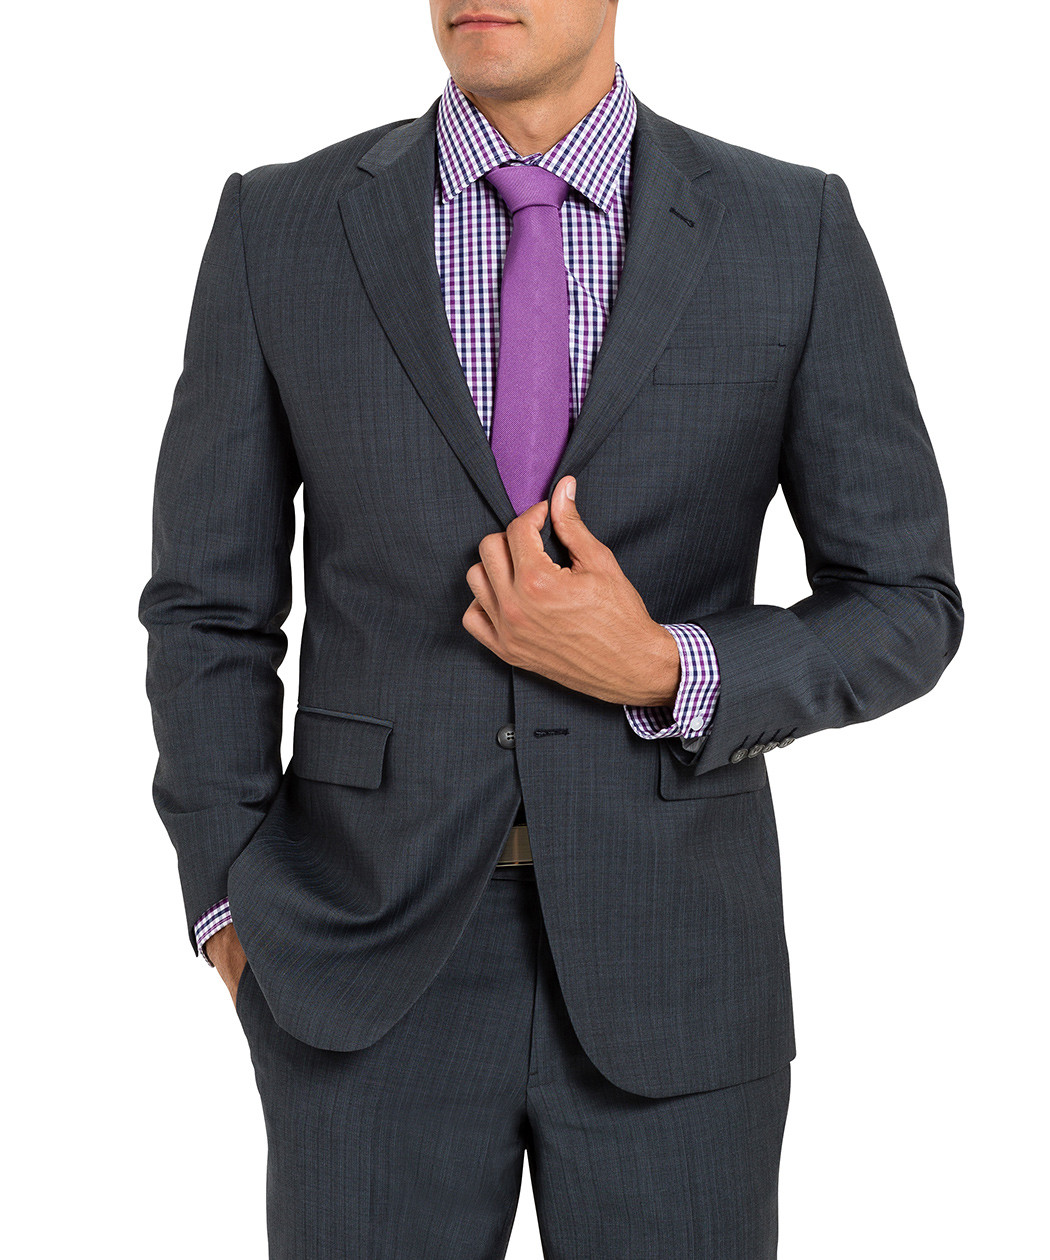 Van Heusen Slim Charcoal Suit Jacket Online Au